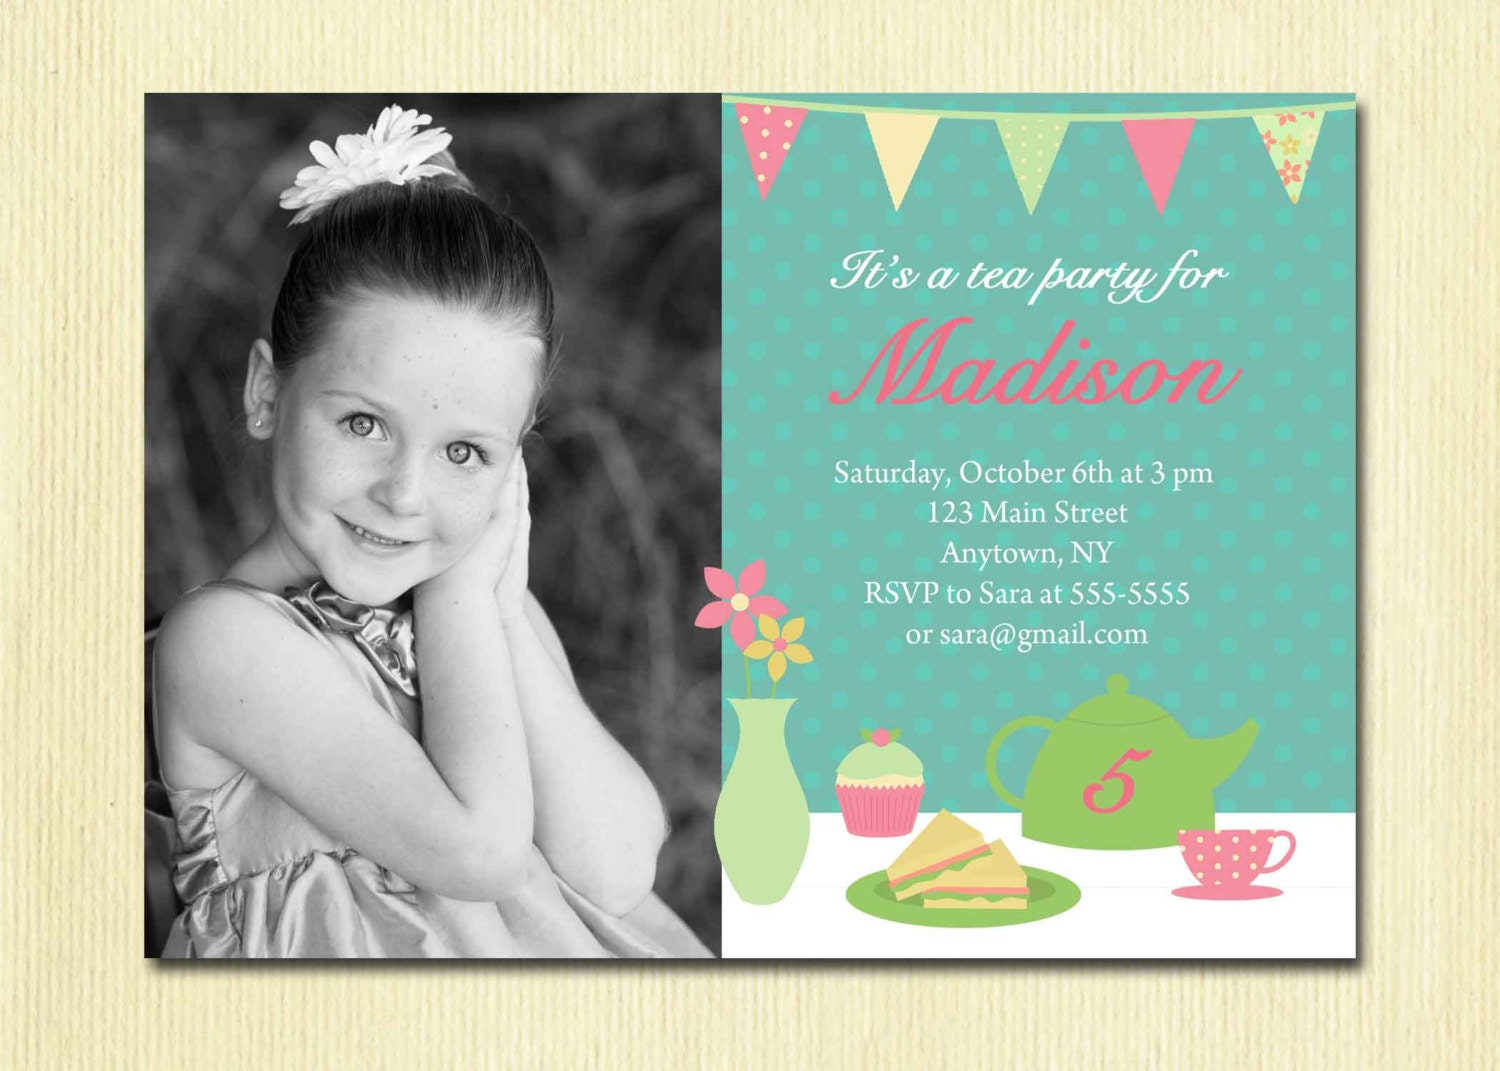 4 year old birthday party invitations gidiyedformapolitica 4 year old birthday party invitations stopboris Images